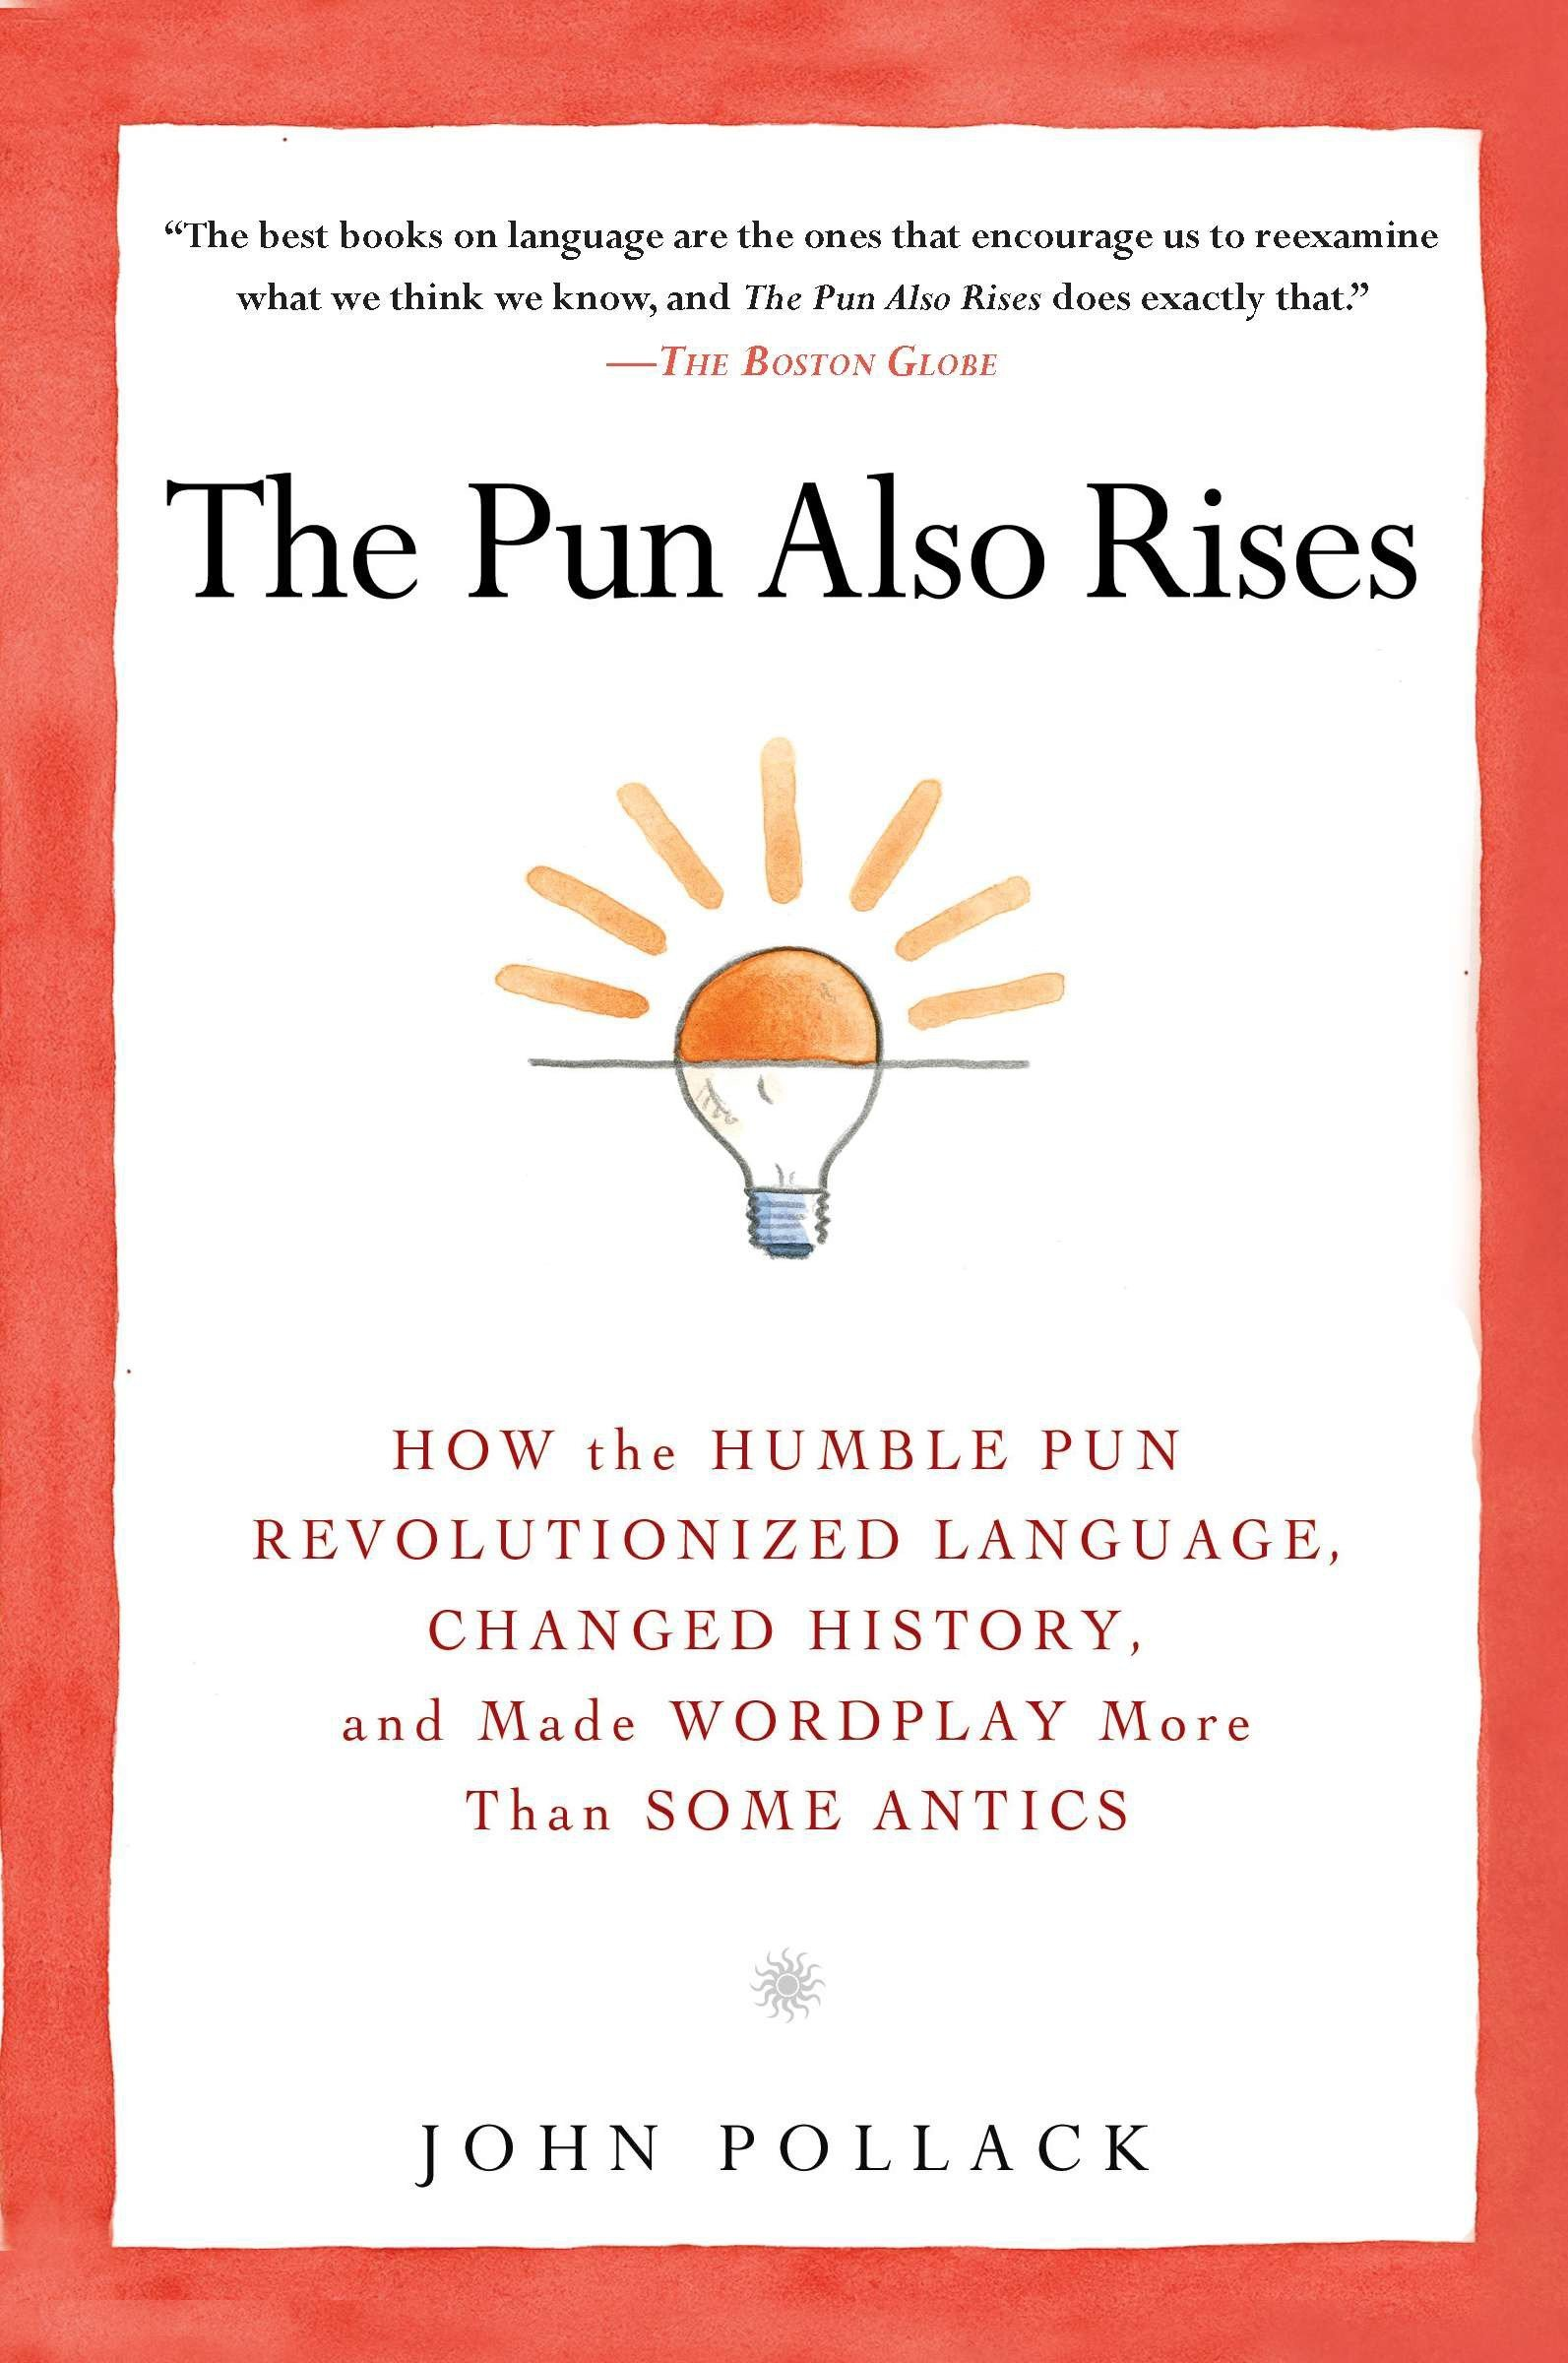 The Pun Also Rises  How The Humble Pun Revolutionized Language Changed History And Made Wordplay M Ore Than Some Antics